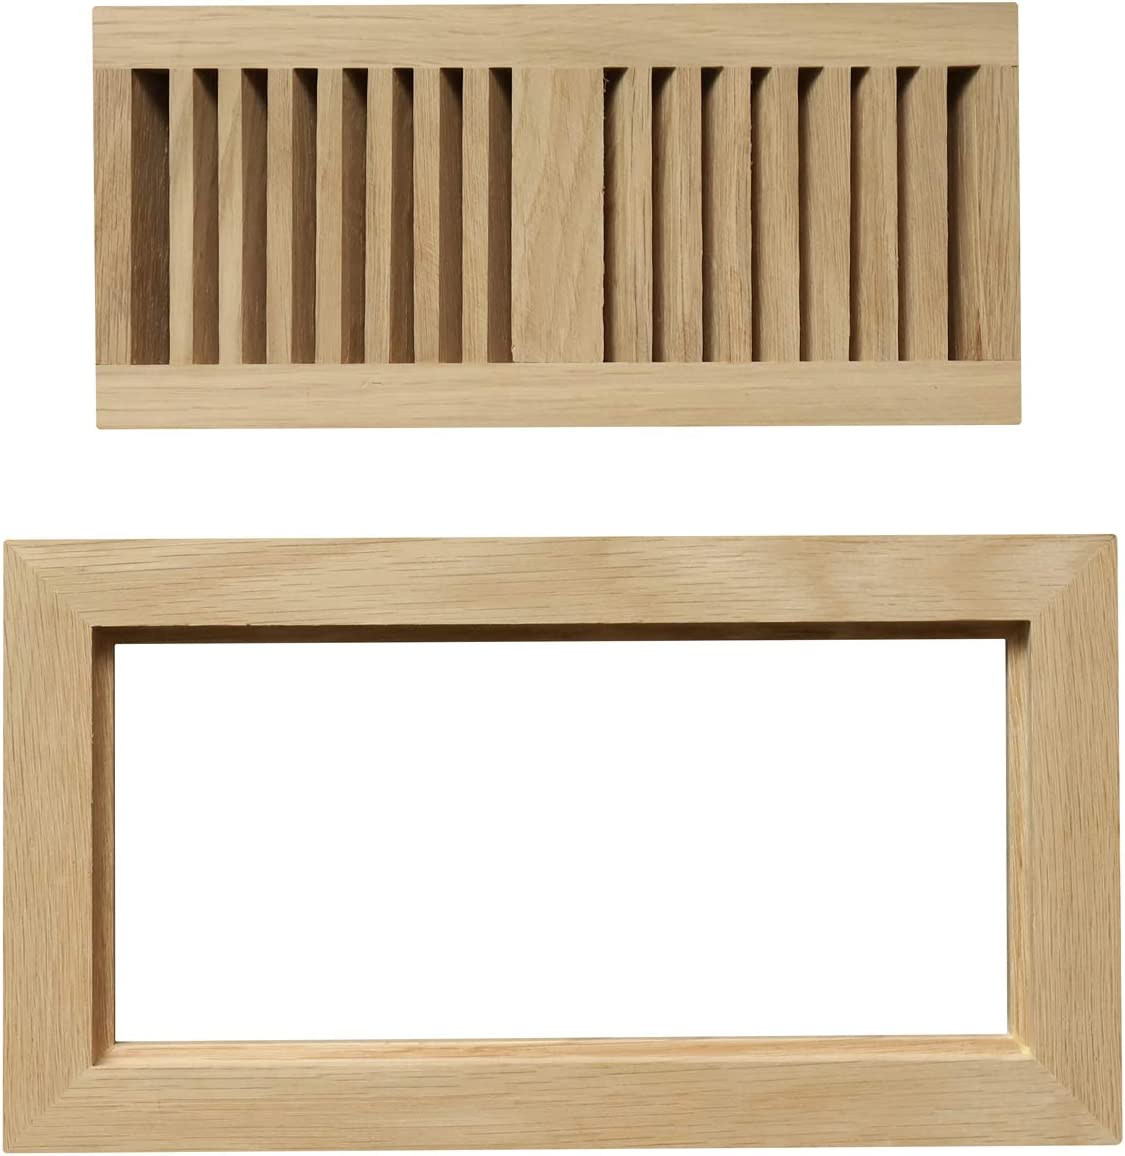 """WELLAND Wood Floor Register Vents 4 x 10 Inch(Duct Opening),Red Oak Flush Mount Vents Cover Unfinished, 3/4"""" Thickness"""